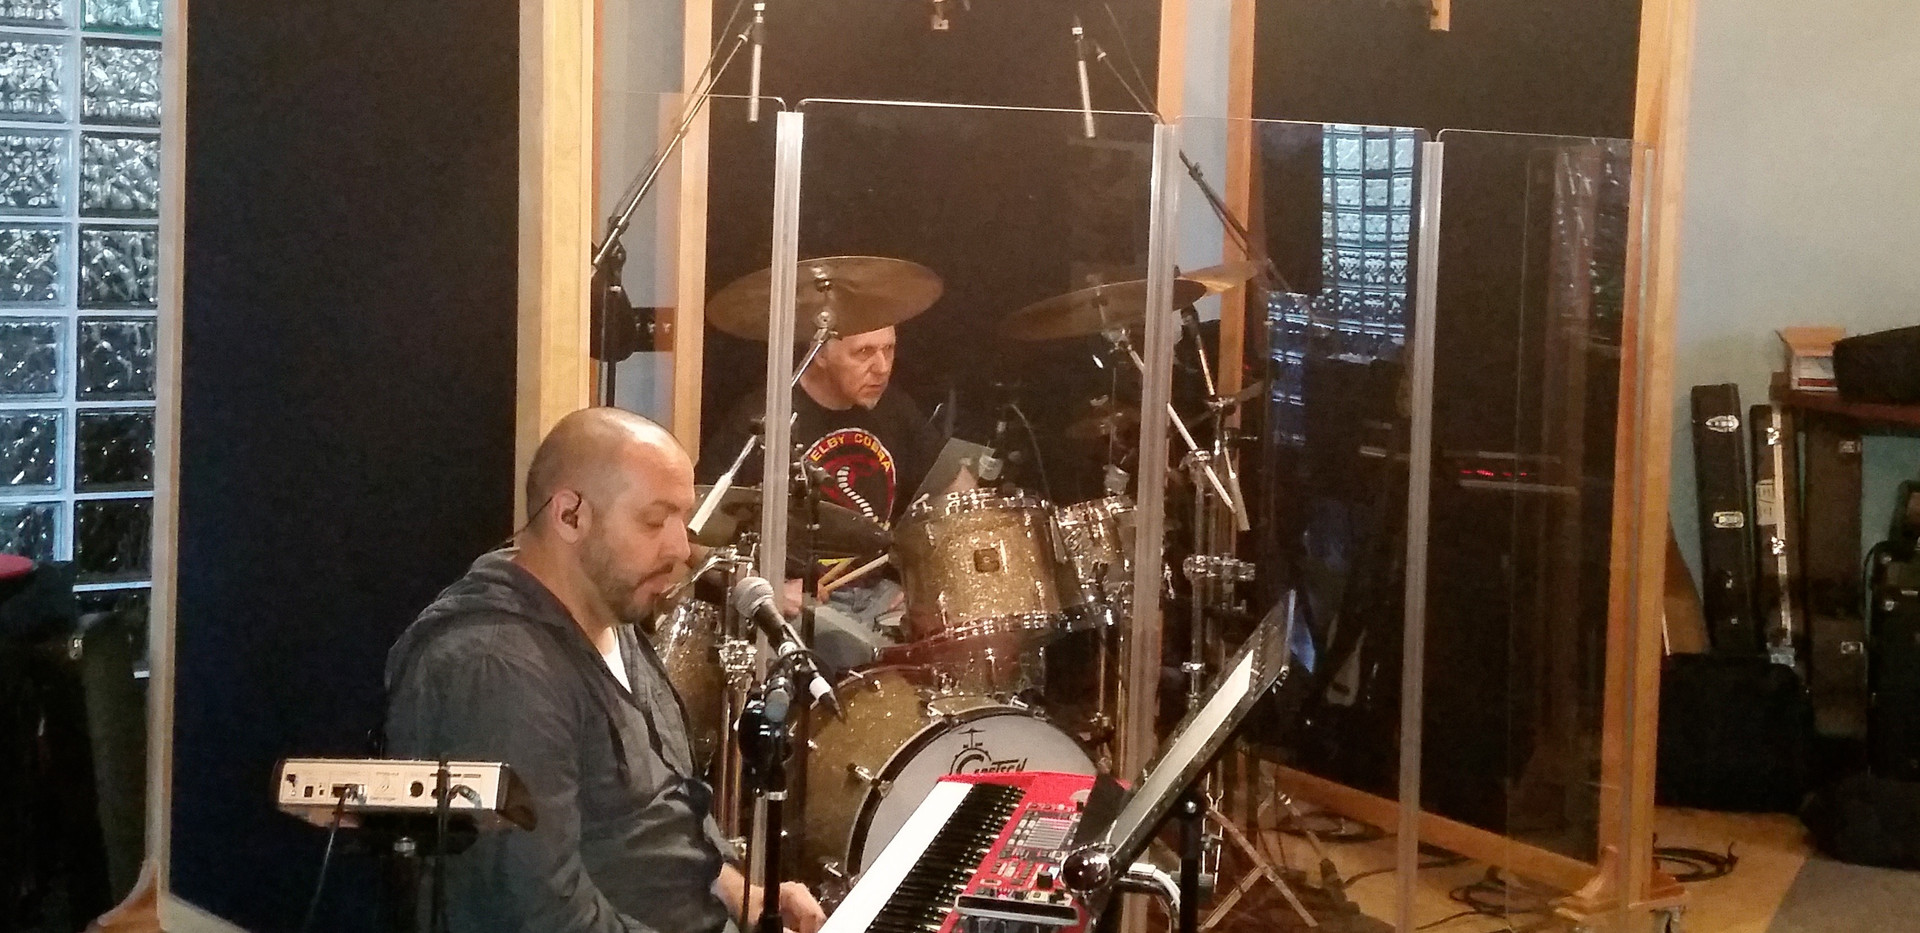 Tim P & Lang on drums